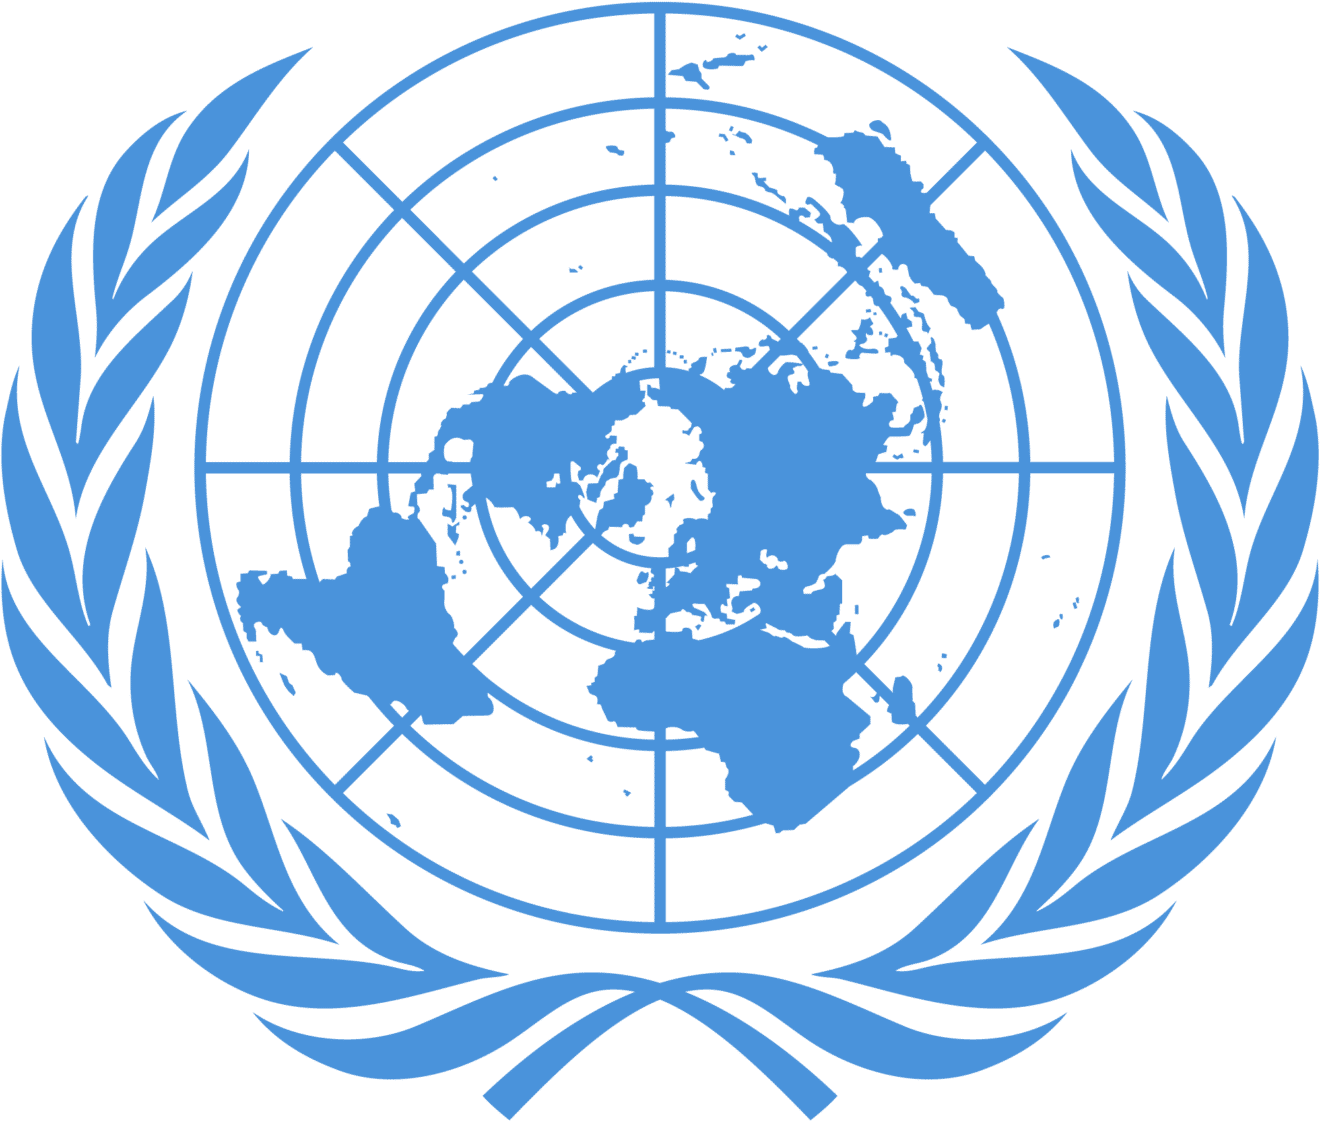 Statement by the Permanent Mission of Russia to the UN on its non-participation in the UN Security Council Arria-Formula meeting on Cyber Stability, Conflict Prevention and Capacity Building, organized by Estonia on 22 May